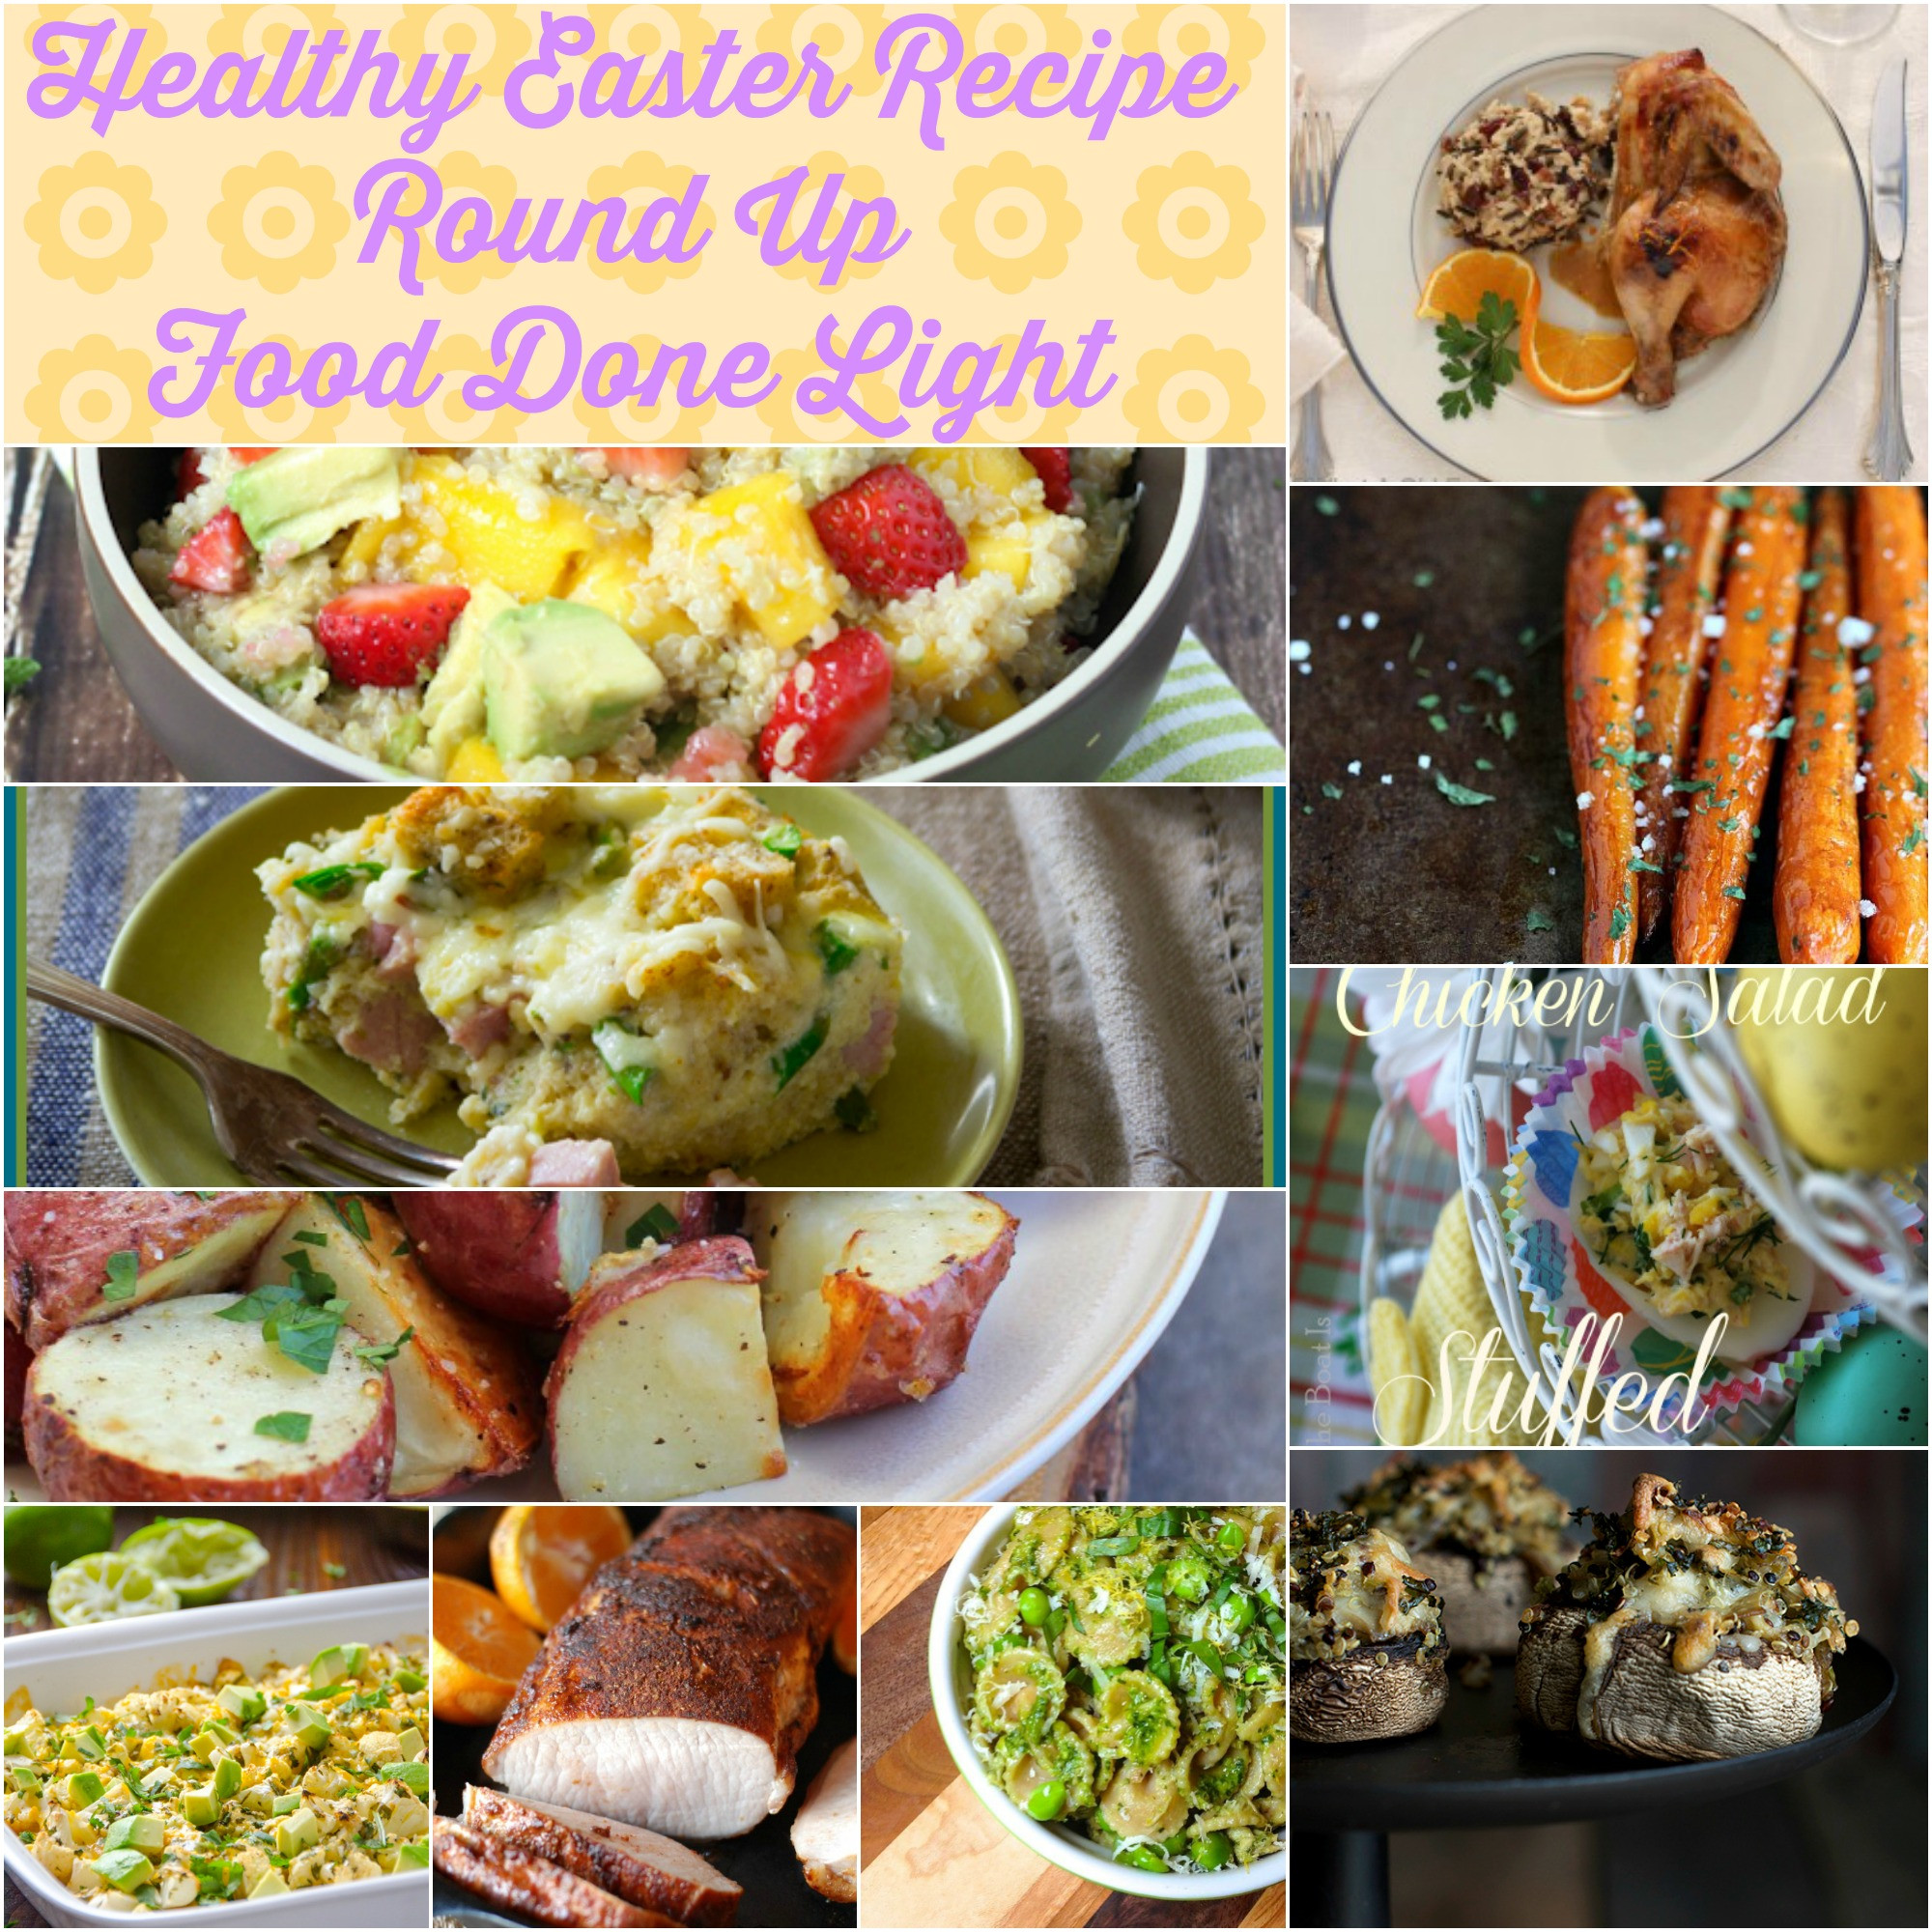 Cooking Light Easter Dinner  Healthy Easter Recipe Round Up Food Done Light